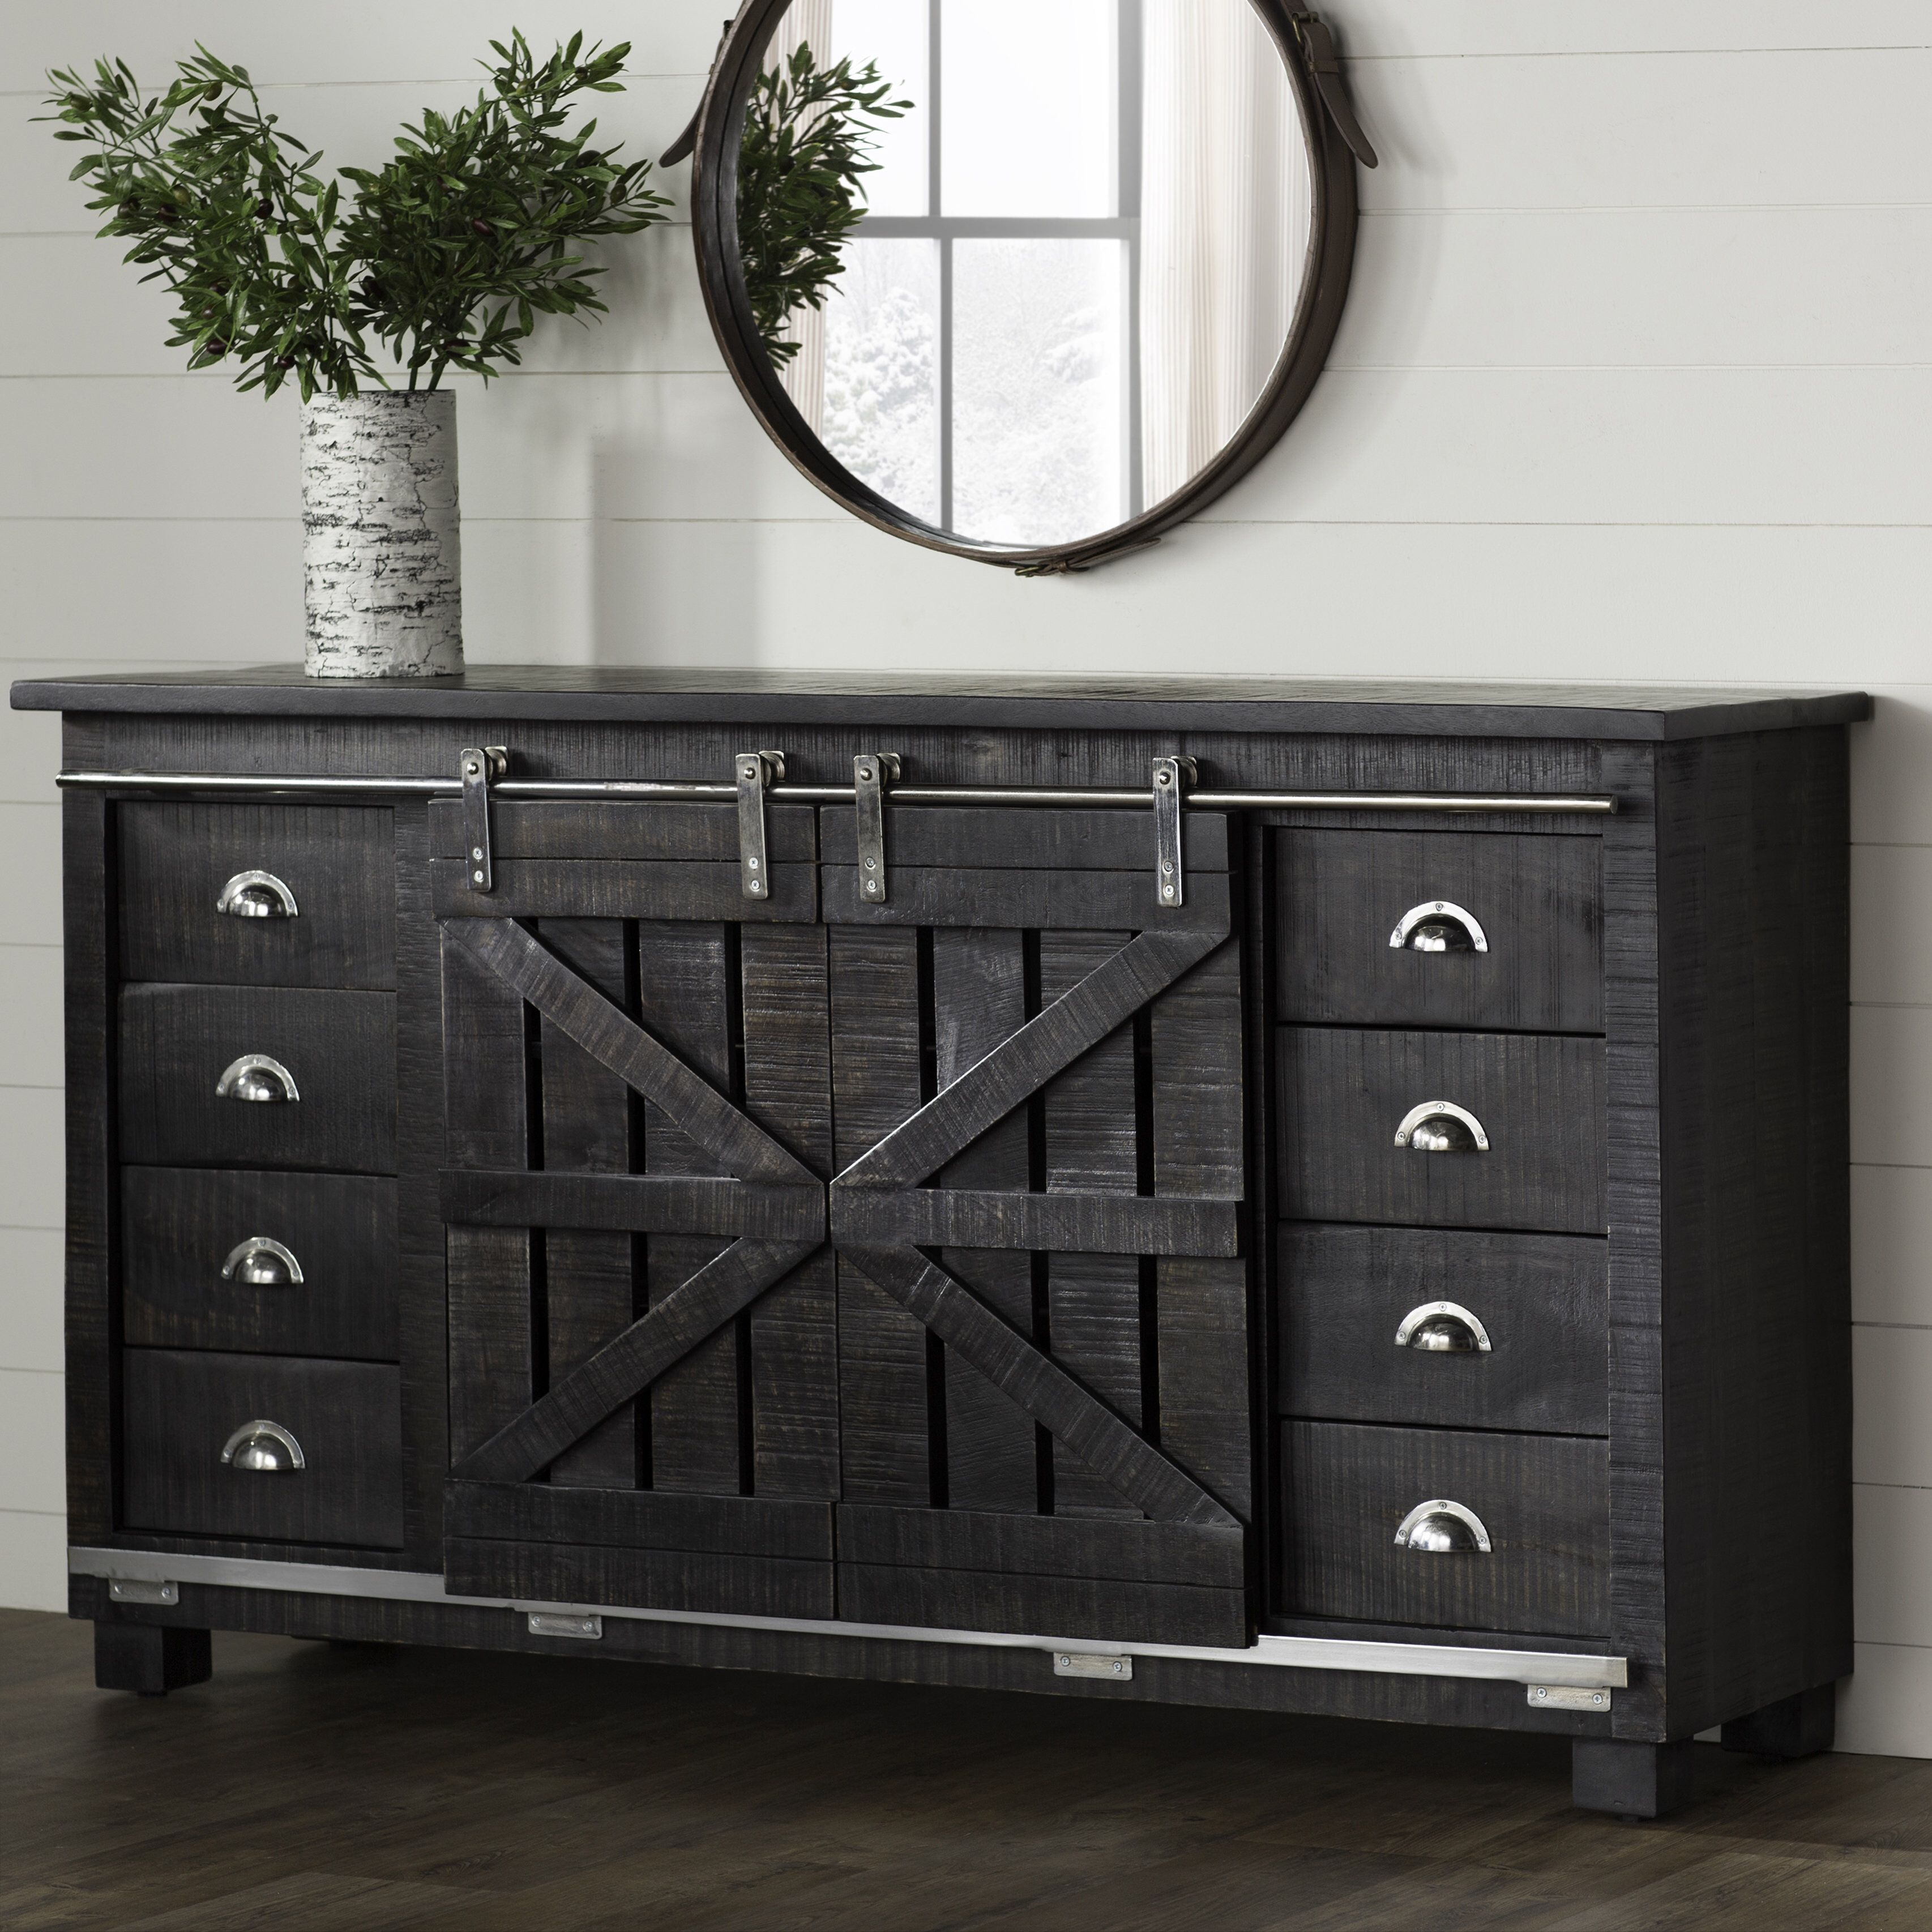 Deana Credenza | Dining Room In 2019 | Shabby Chic Furniture With Bremner Credenzas (View 3 of 30)